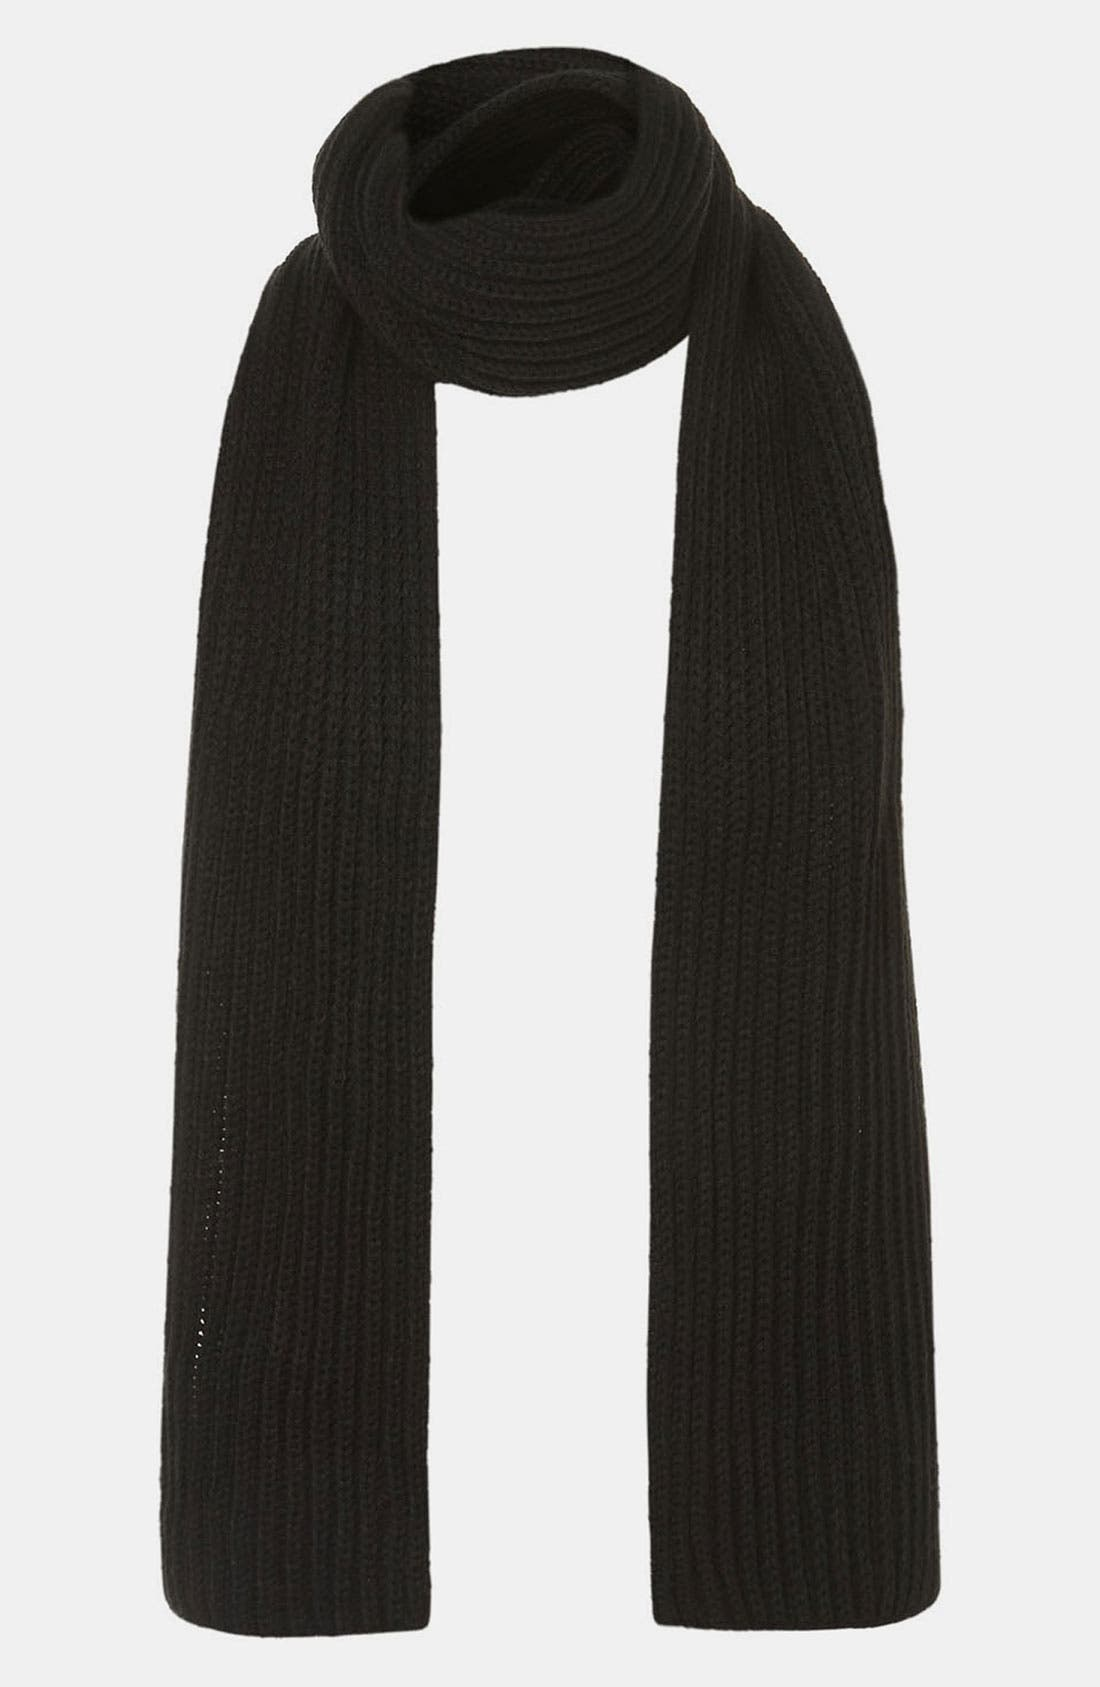 Alternate Image 1 Selected - Topman Knit Scarf